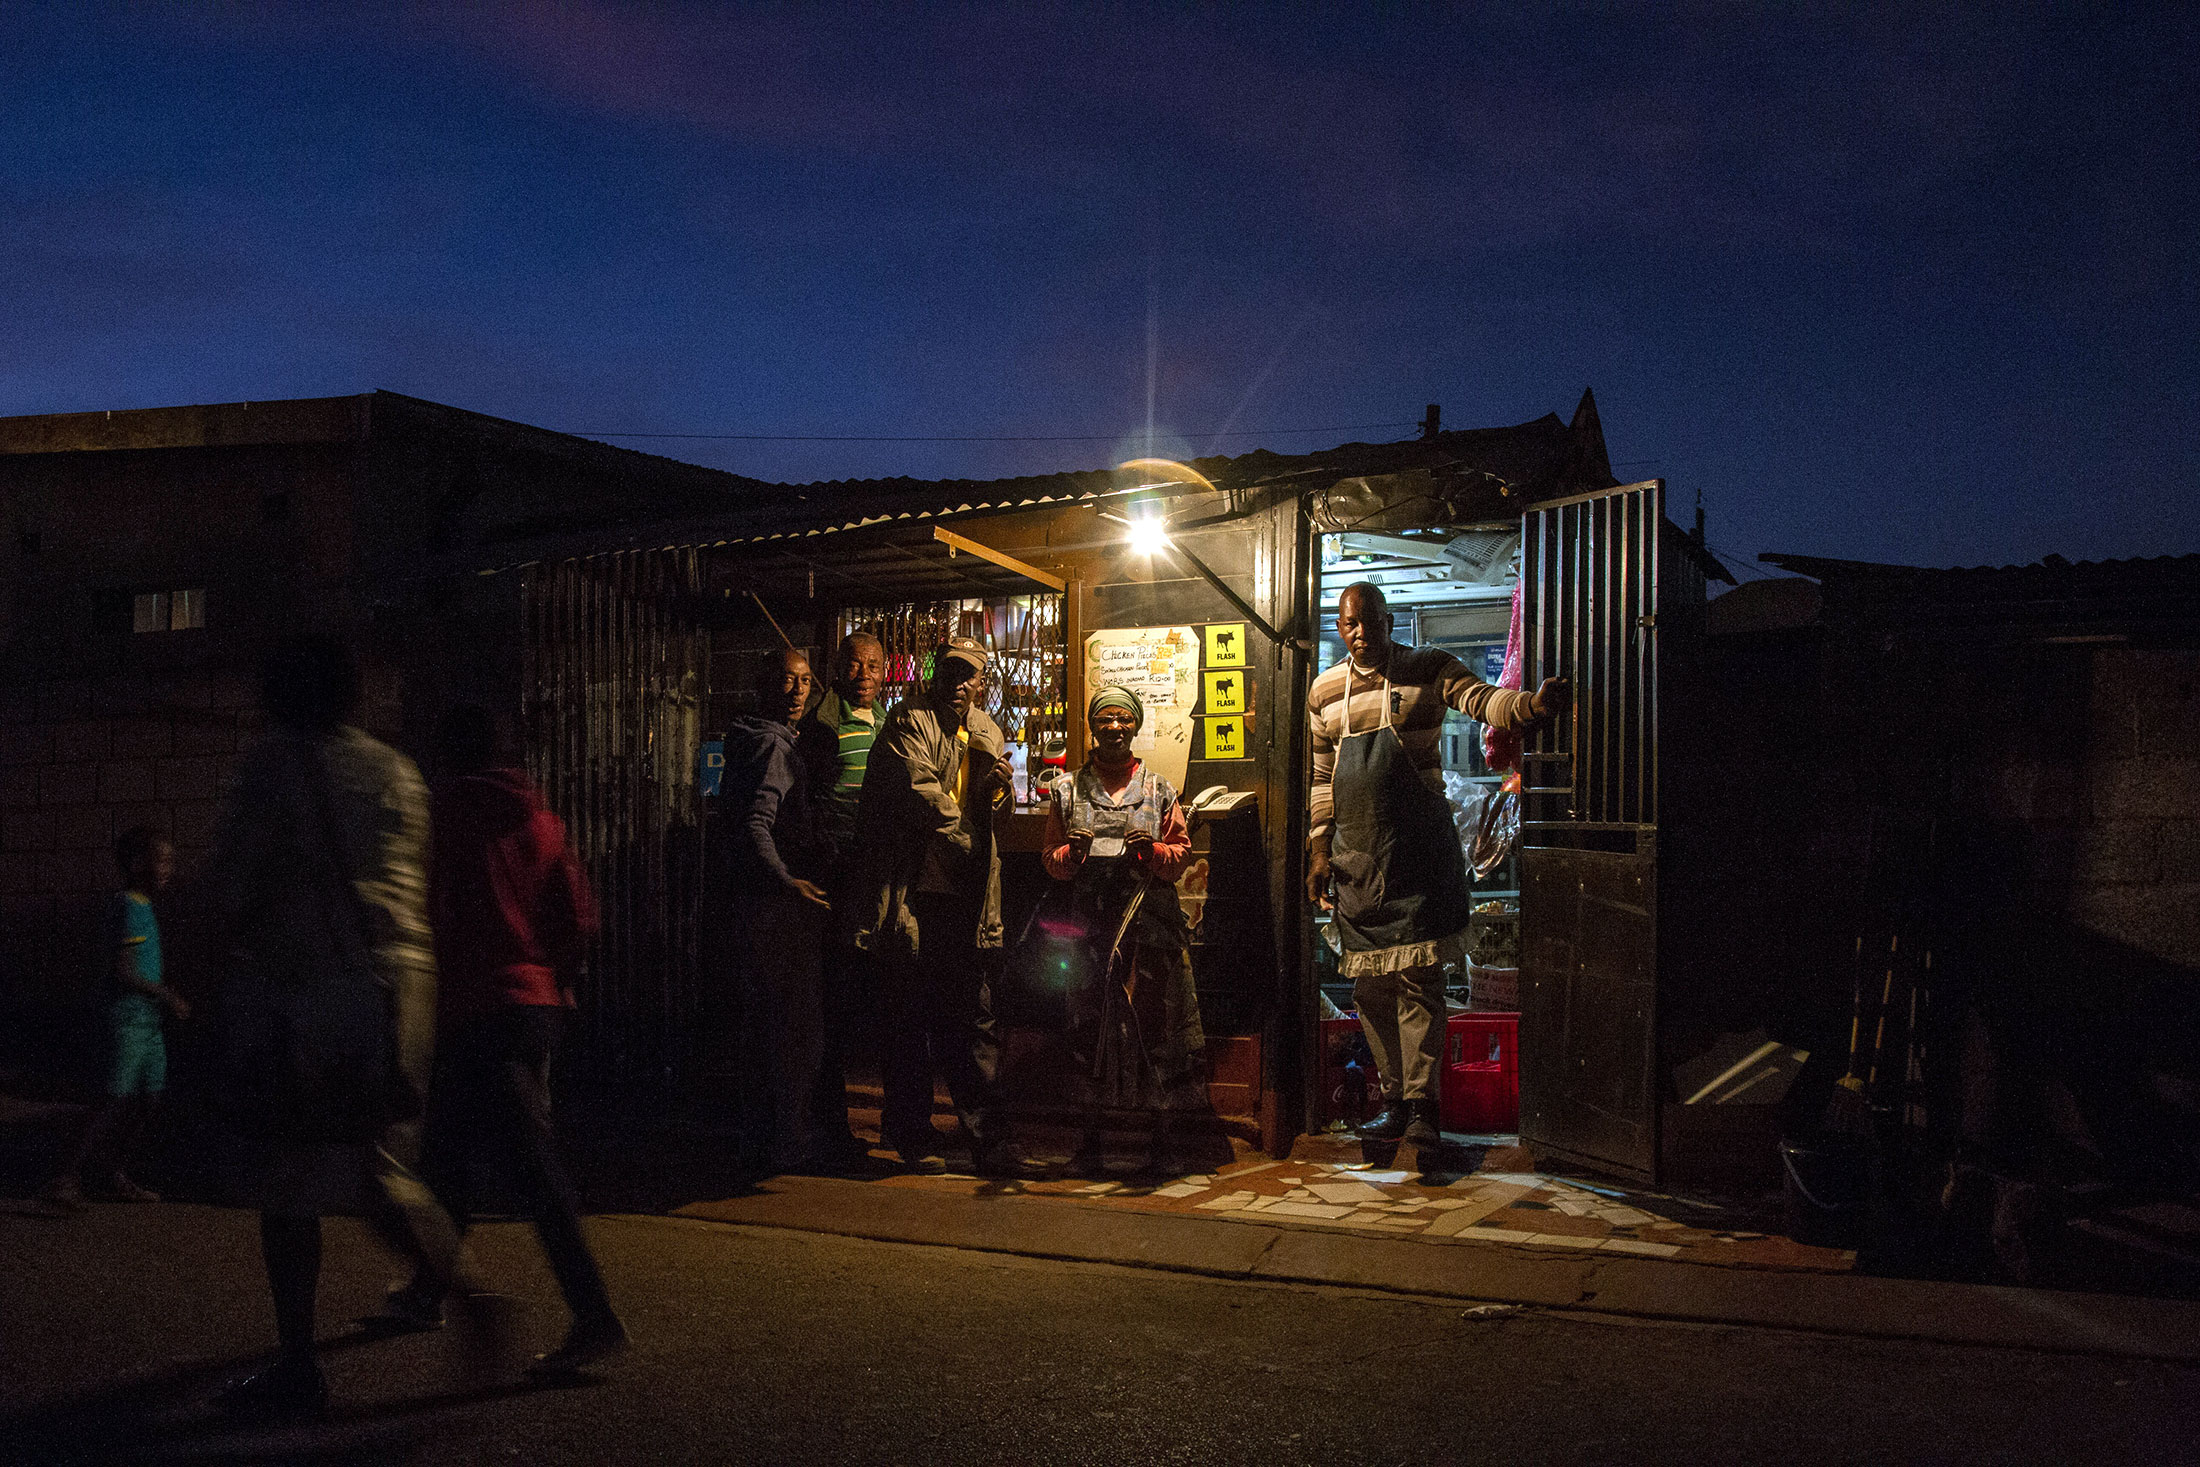 Led night light south africa - What Is South Africa Doing To Tackle Its Electricity Crisis Bloomberg